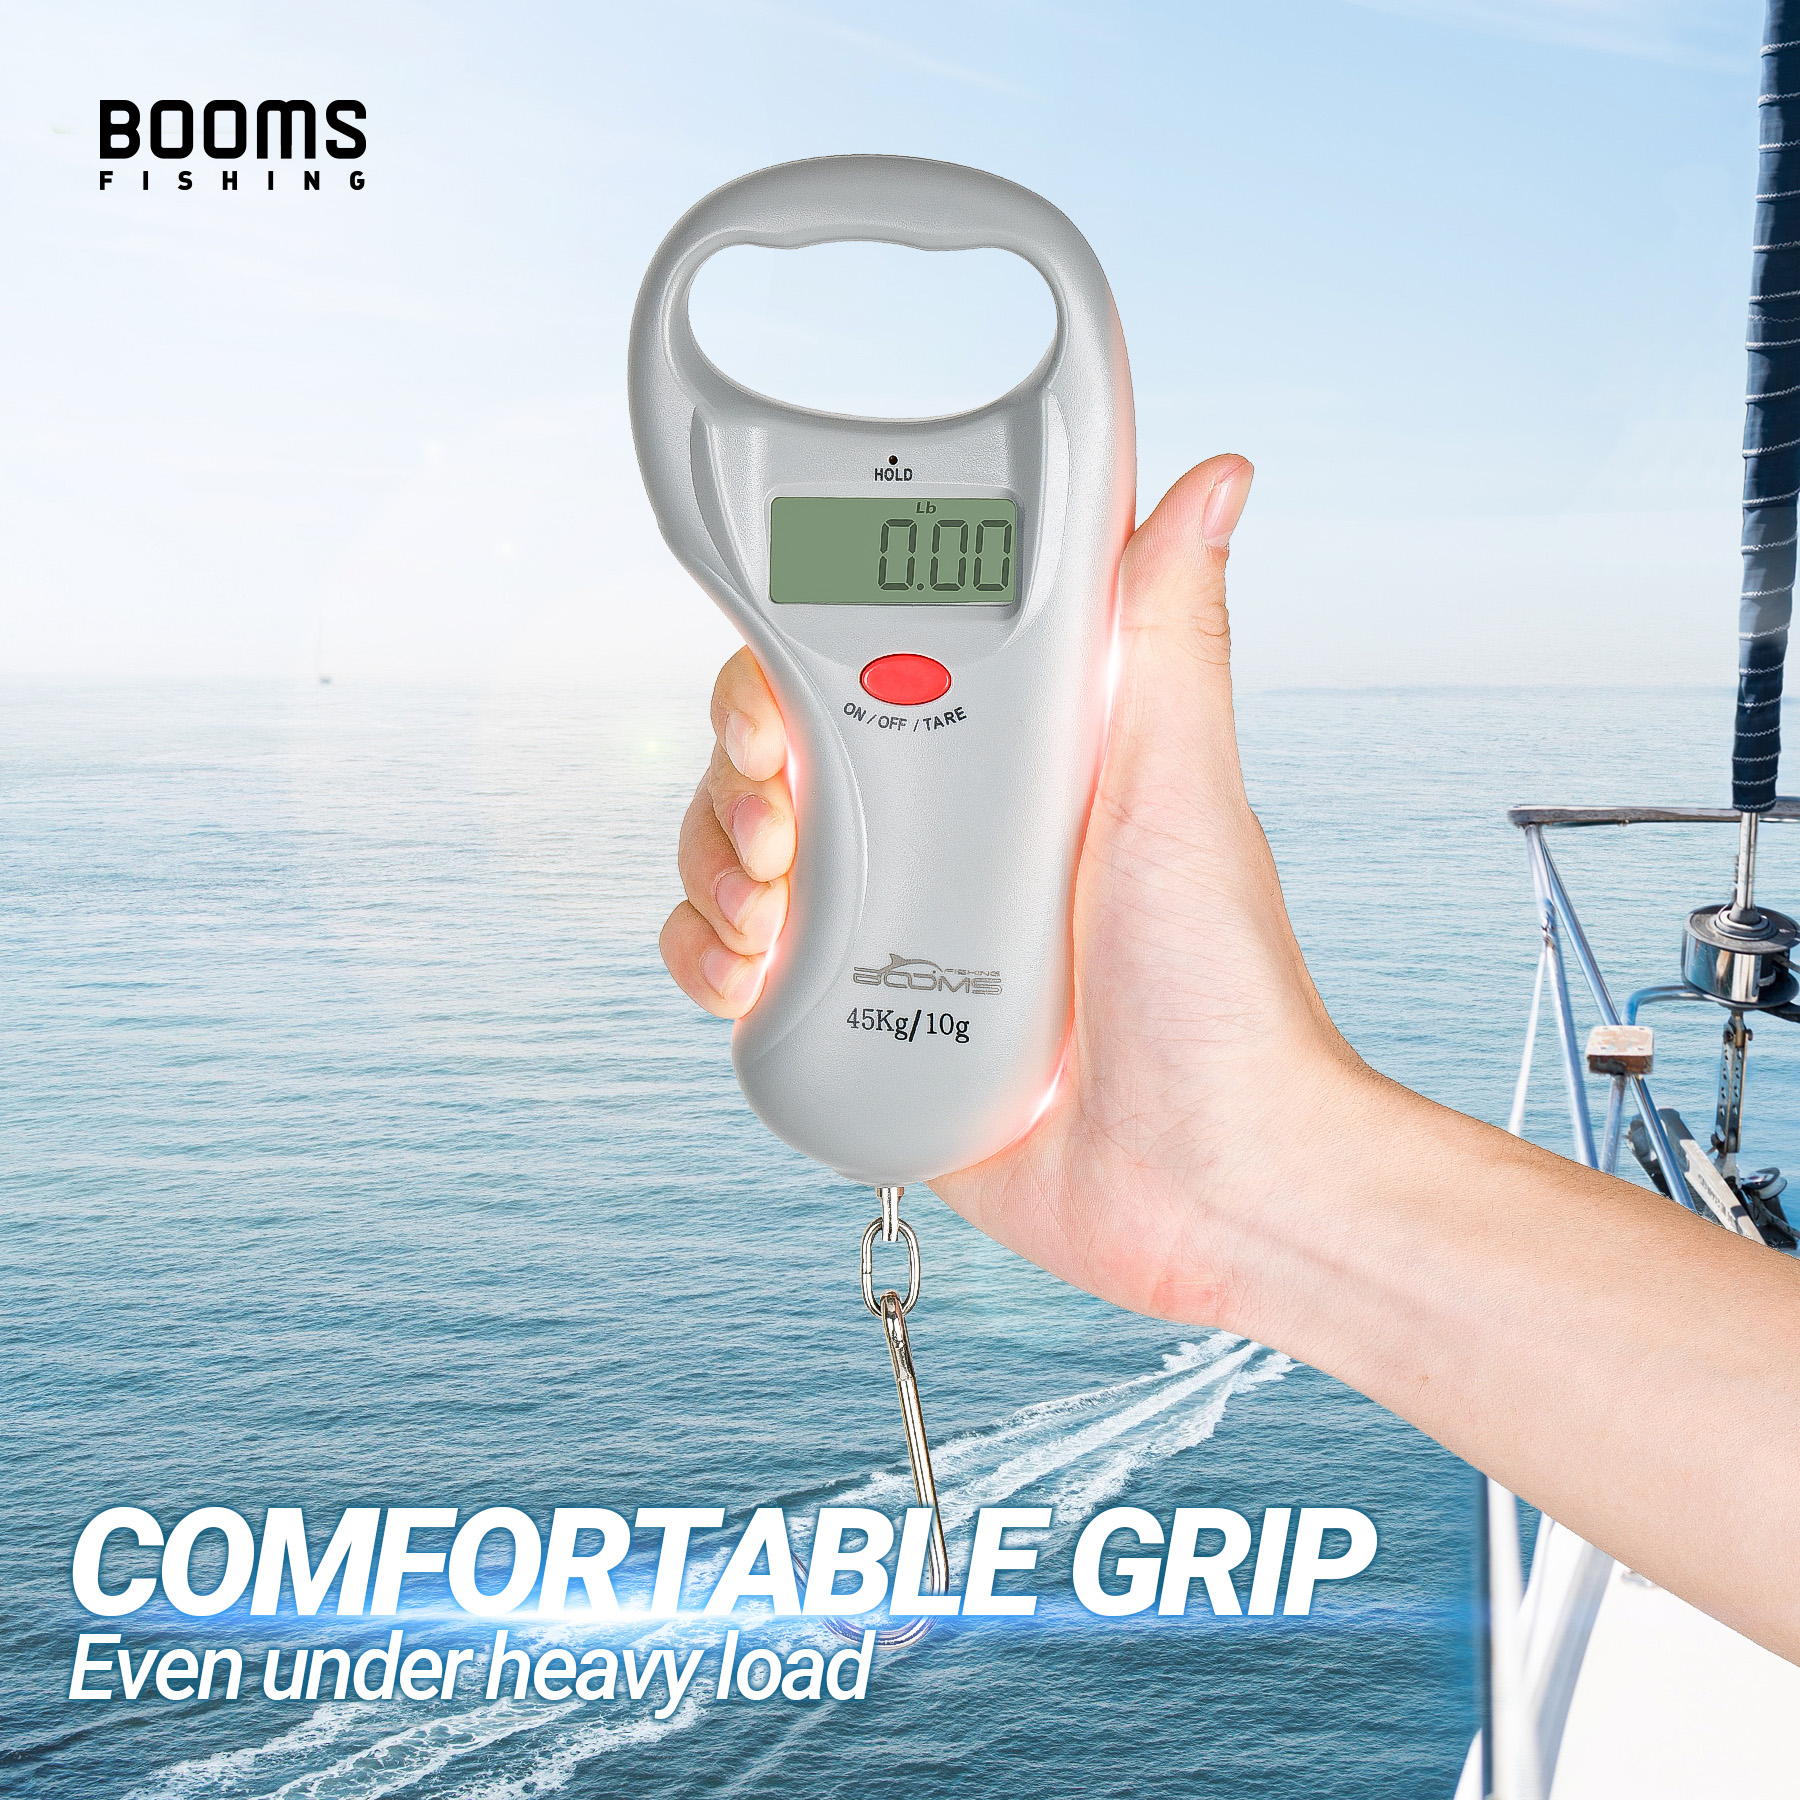 Booms Fishing C02 Digital Fish Scales with Tape Measure